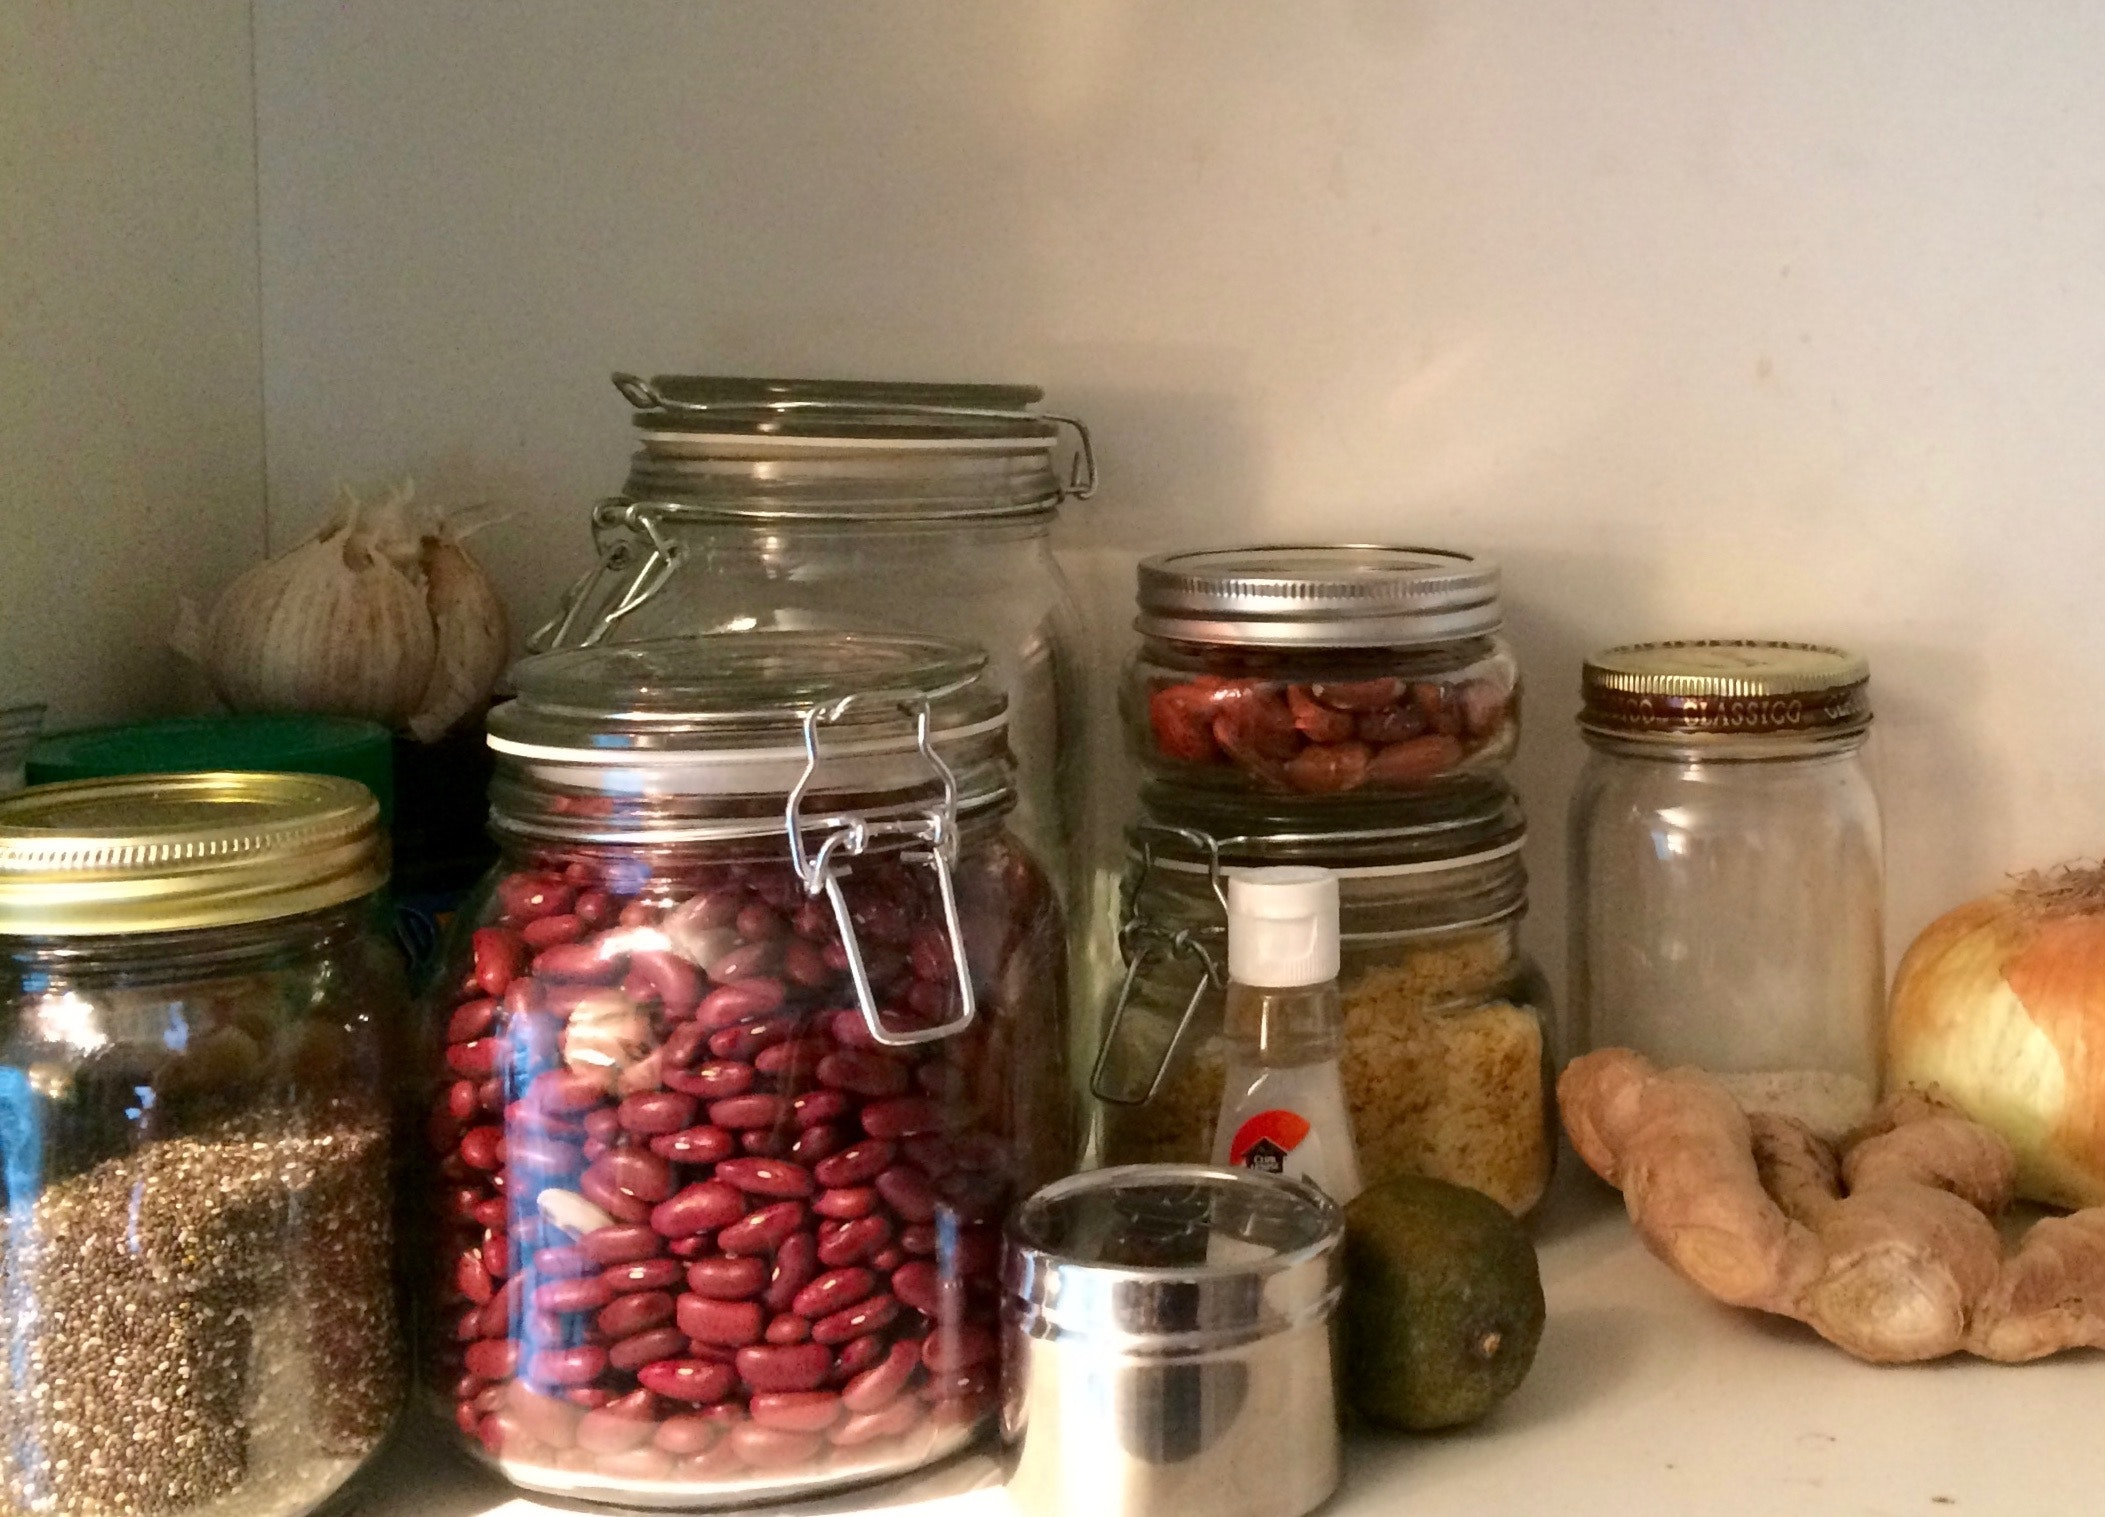 I Tried Living Zero-Waste & Plastic-Free For Two Weeks